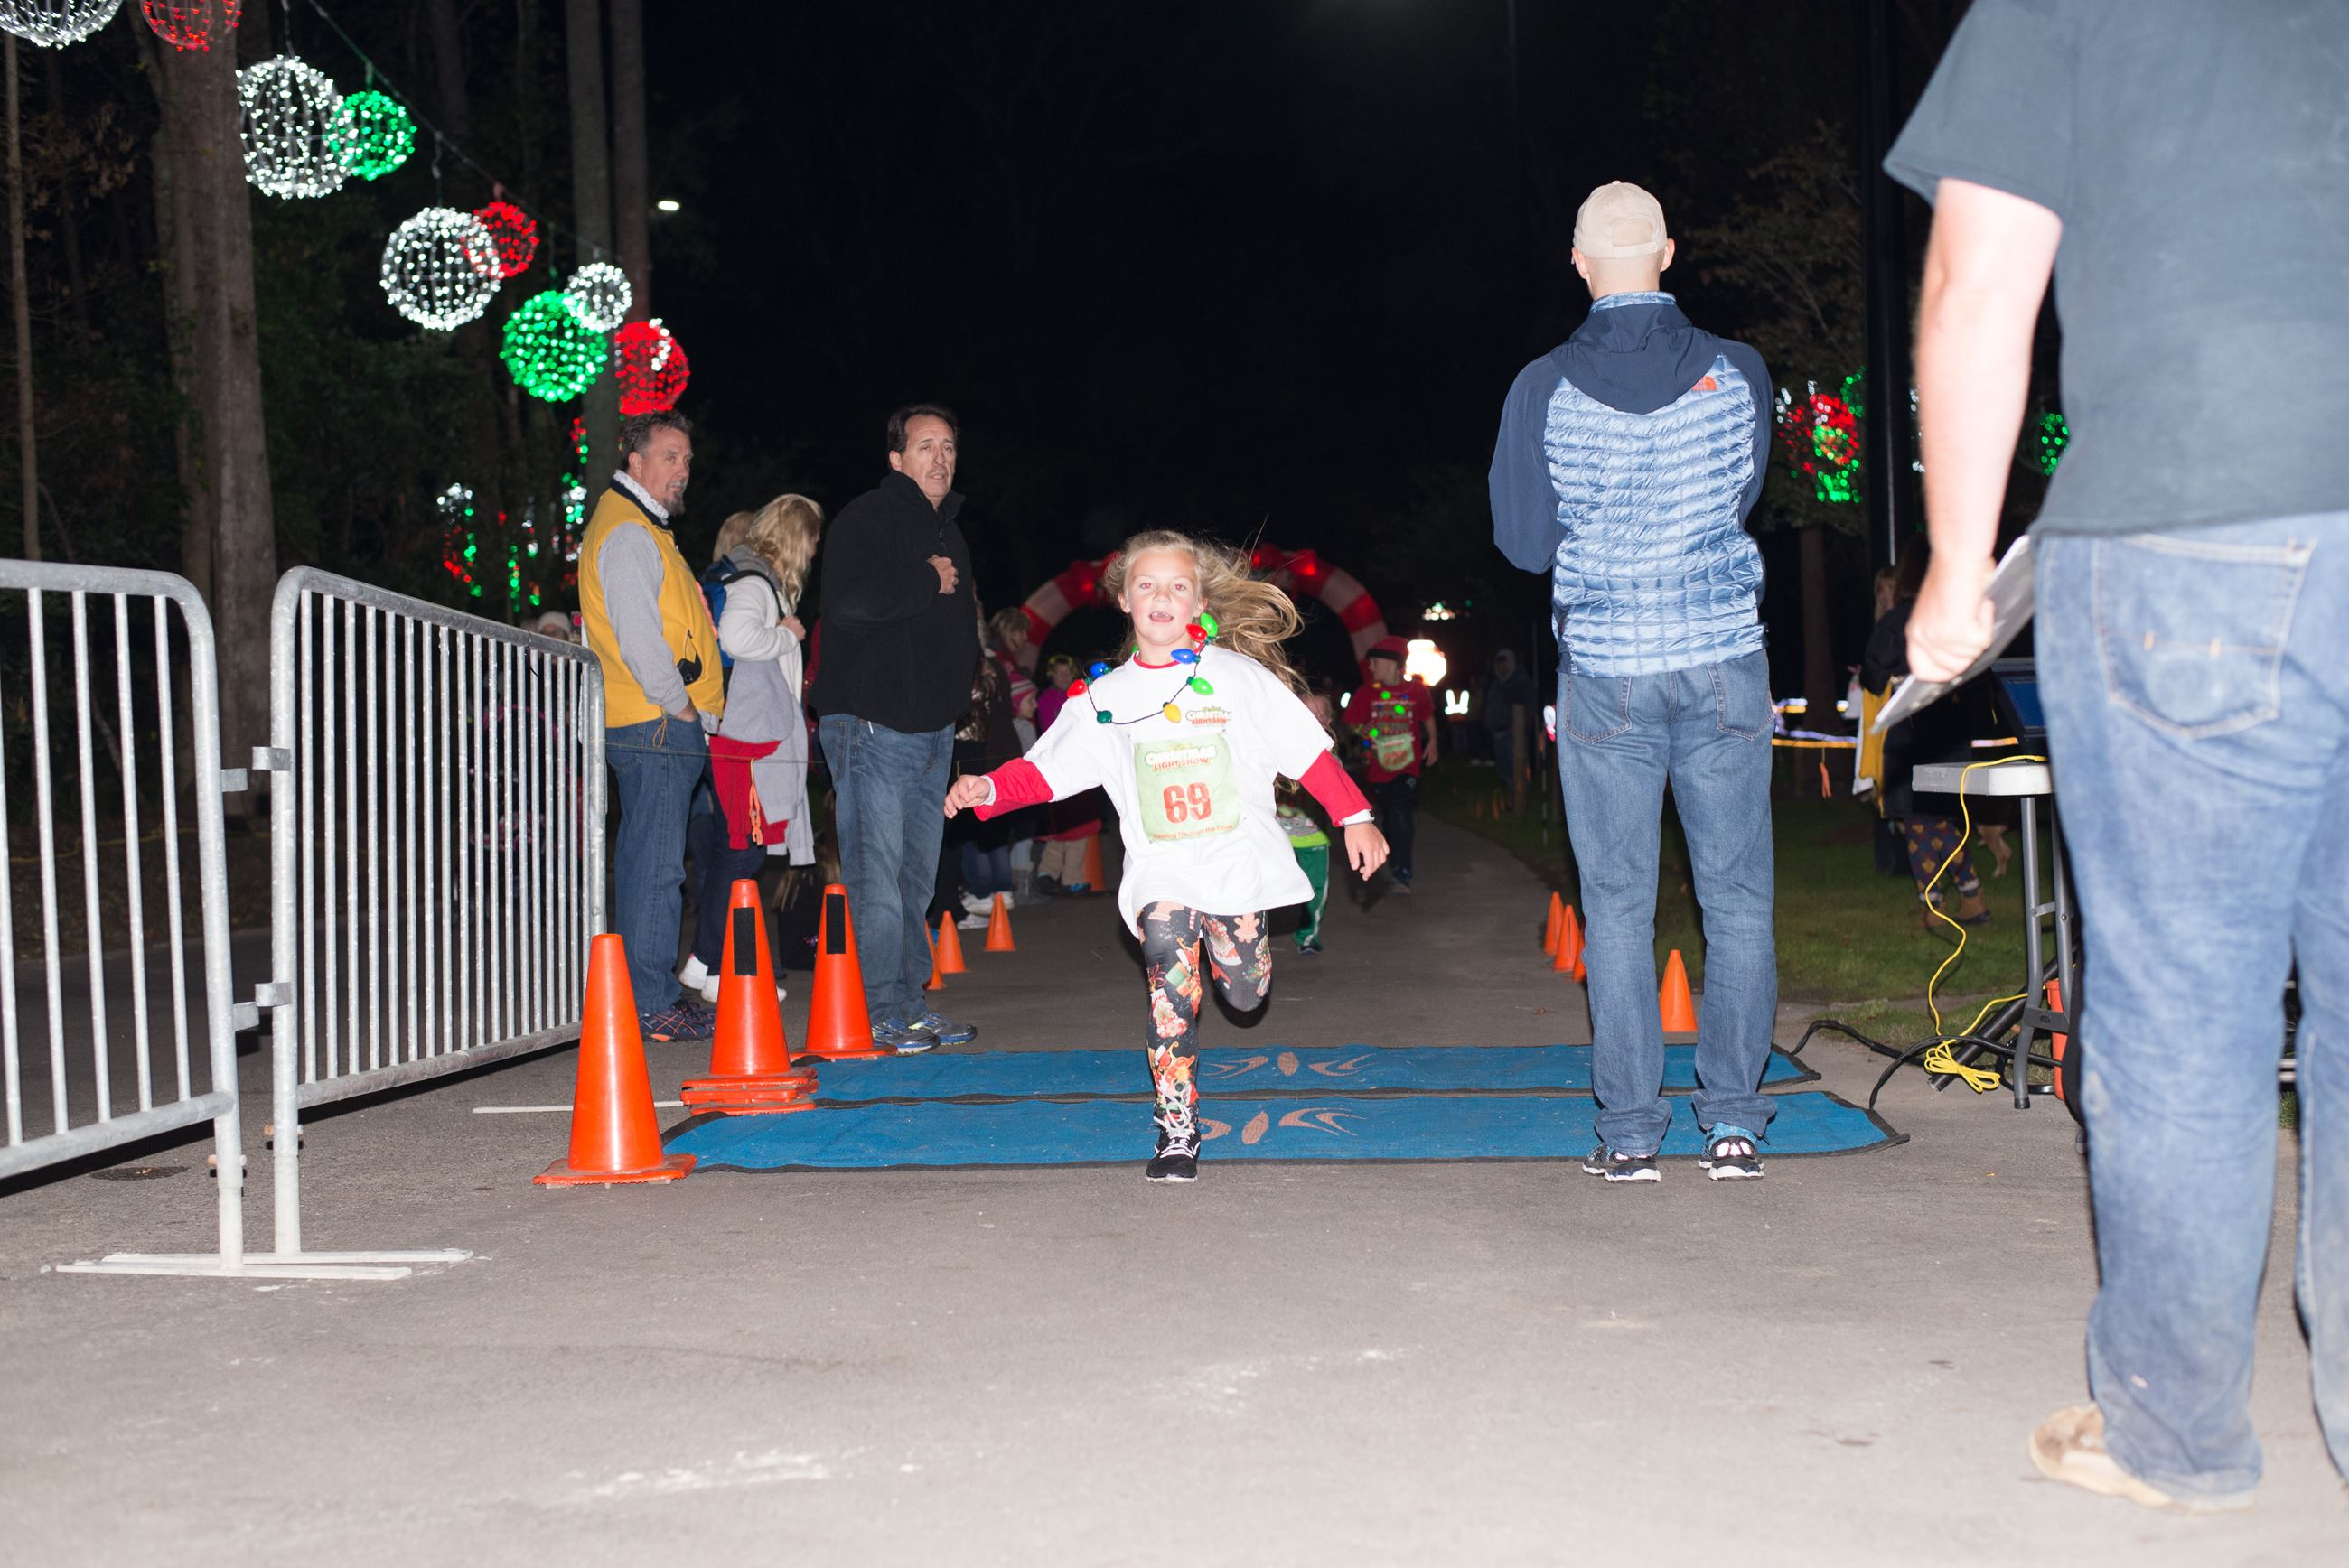 Young Girl Running Across a Finish Line